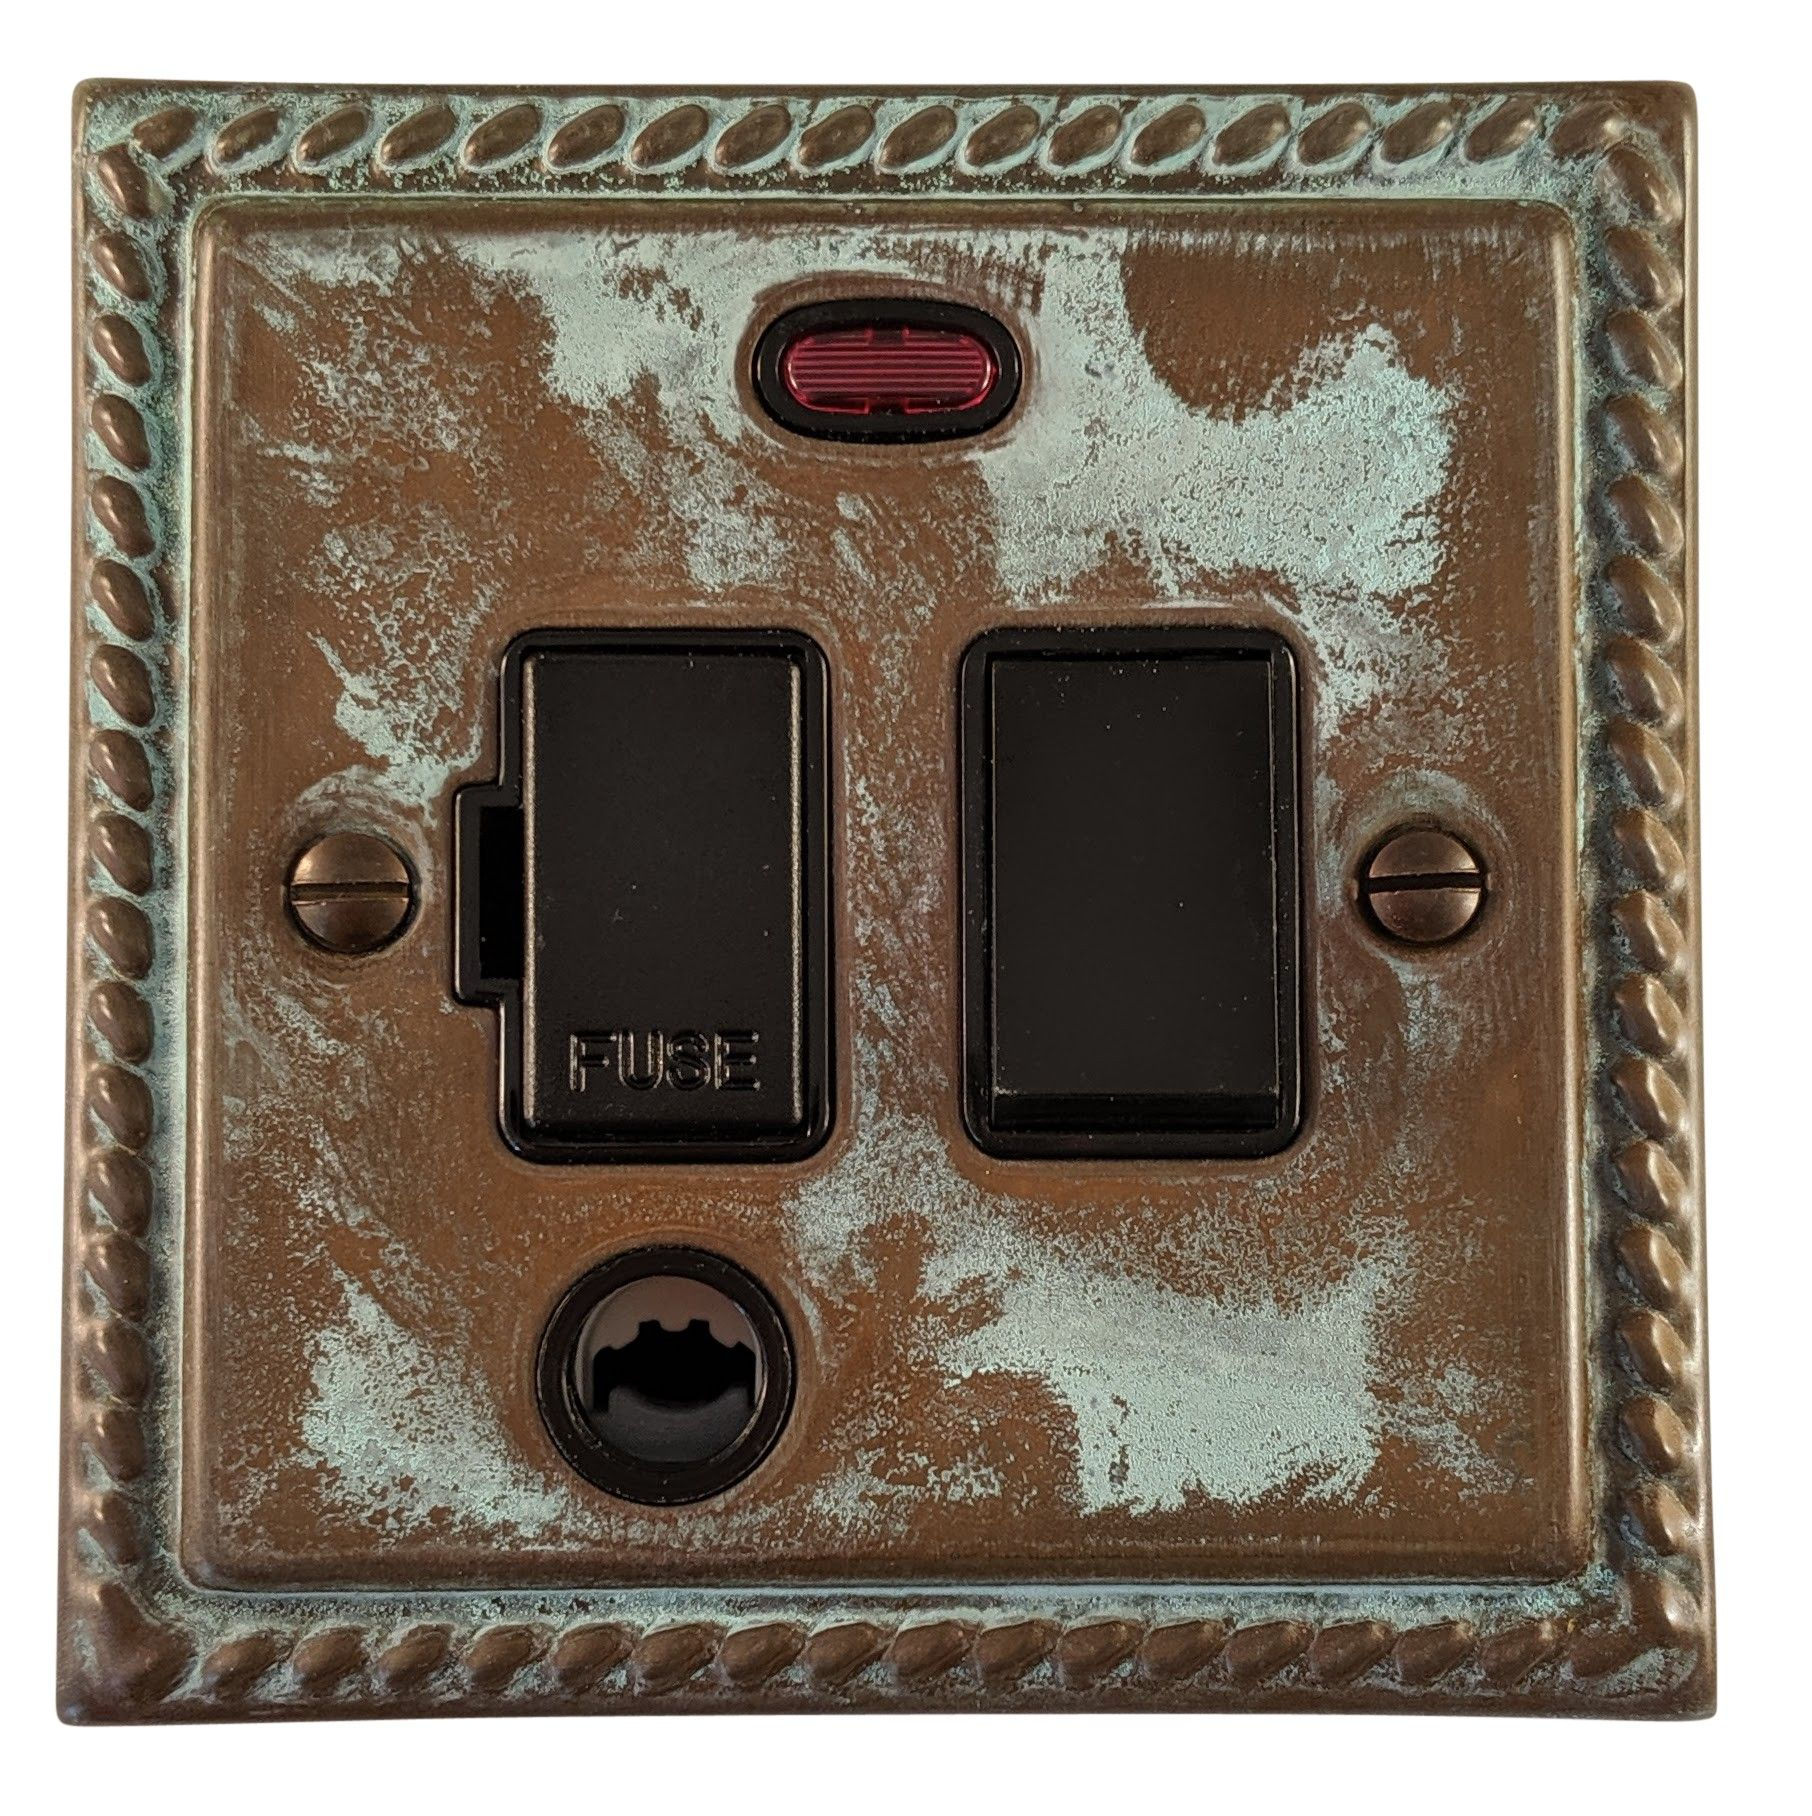 G&H MV77B Monarch Roped Verdigris 1 Gang Fused Spur 13A Switched & Flex Outlet & Neon